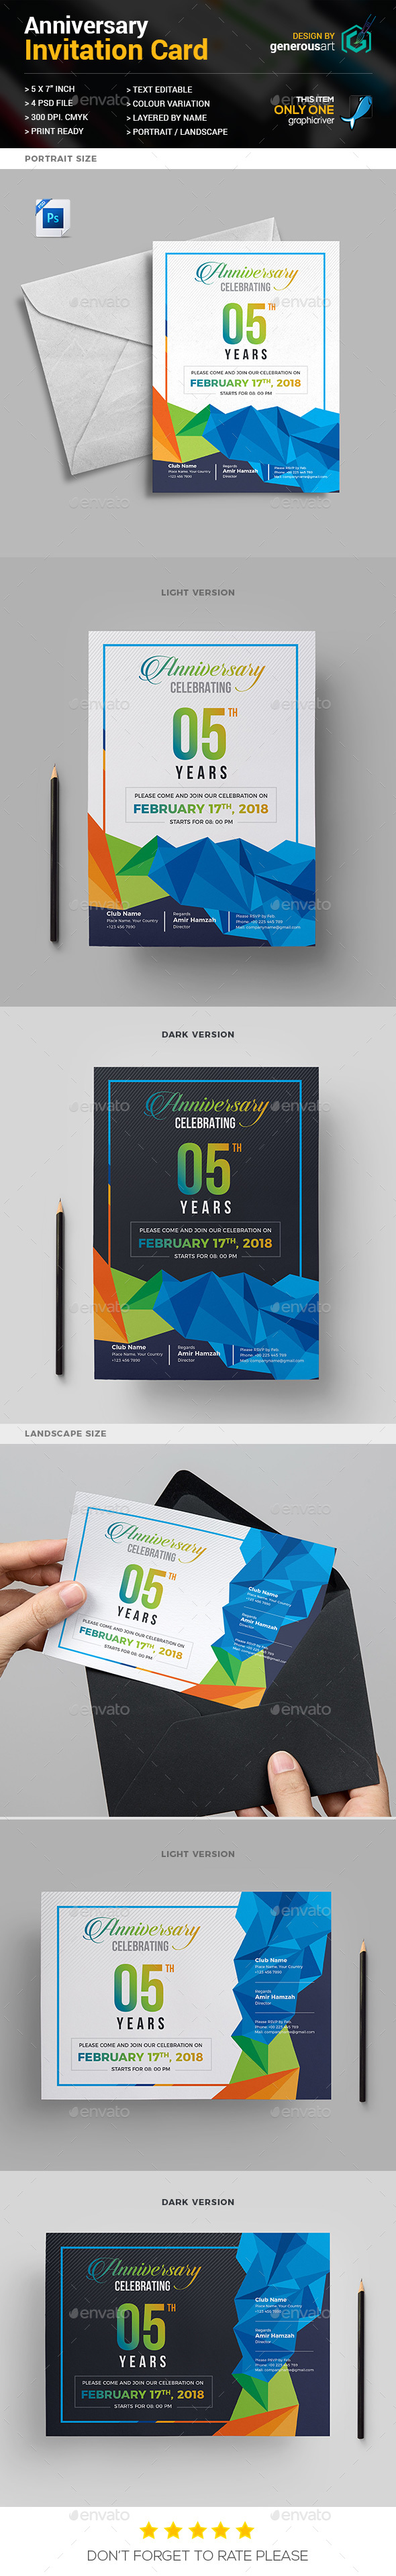 Anniversary Invitation - Anniversary Greeting Cards